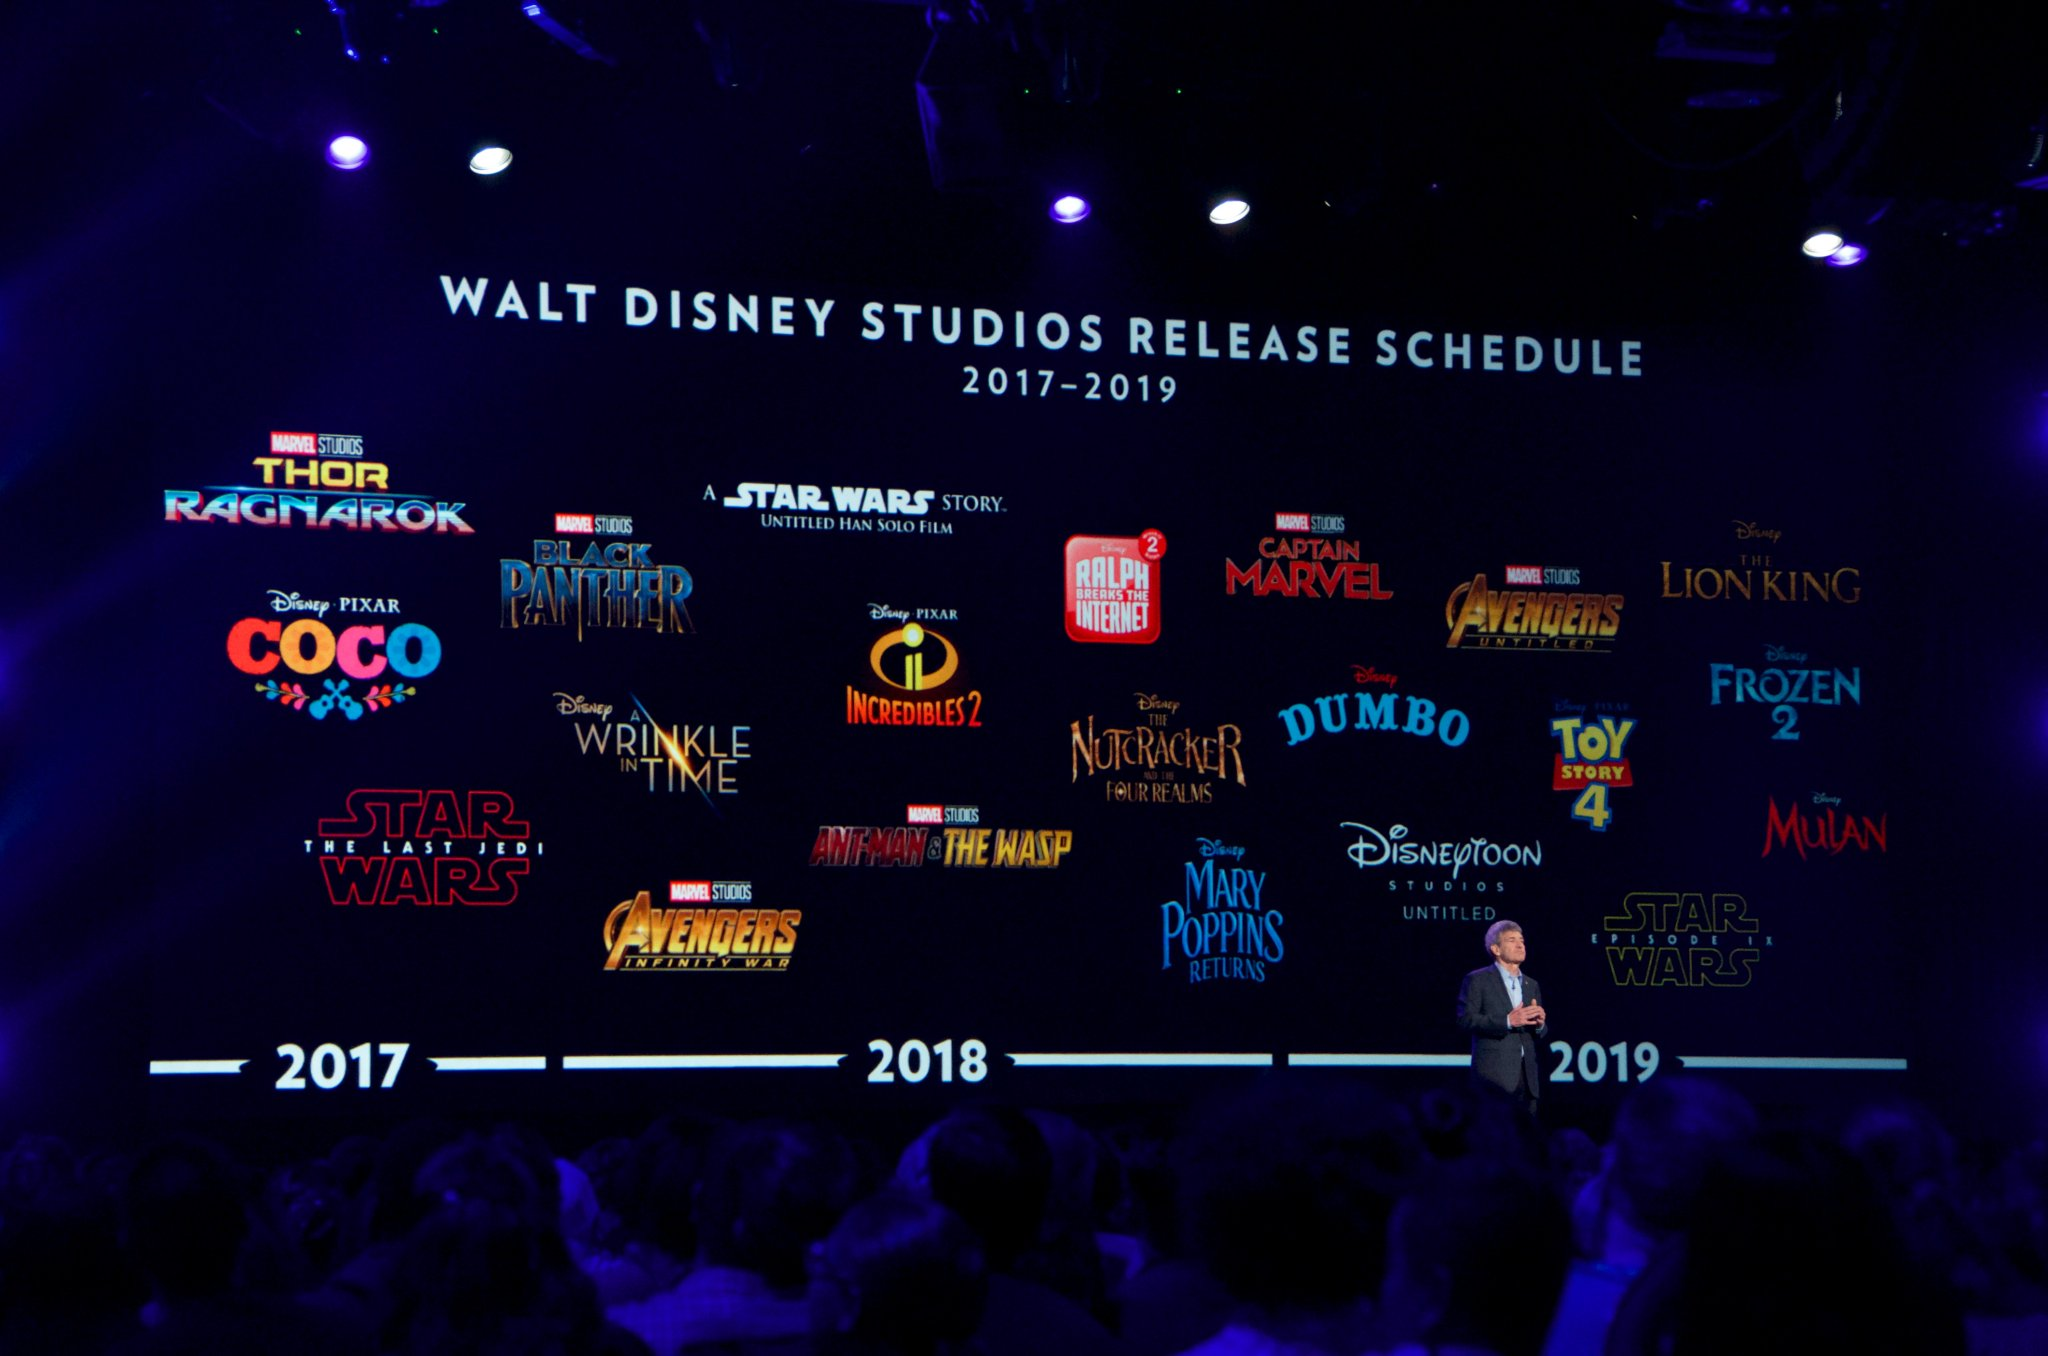 All Movies Coming Out This Year 2018 With Release Dates and More Insight